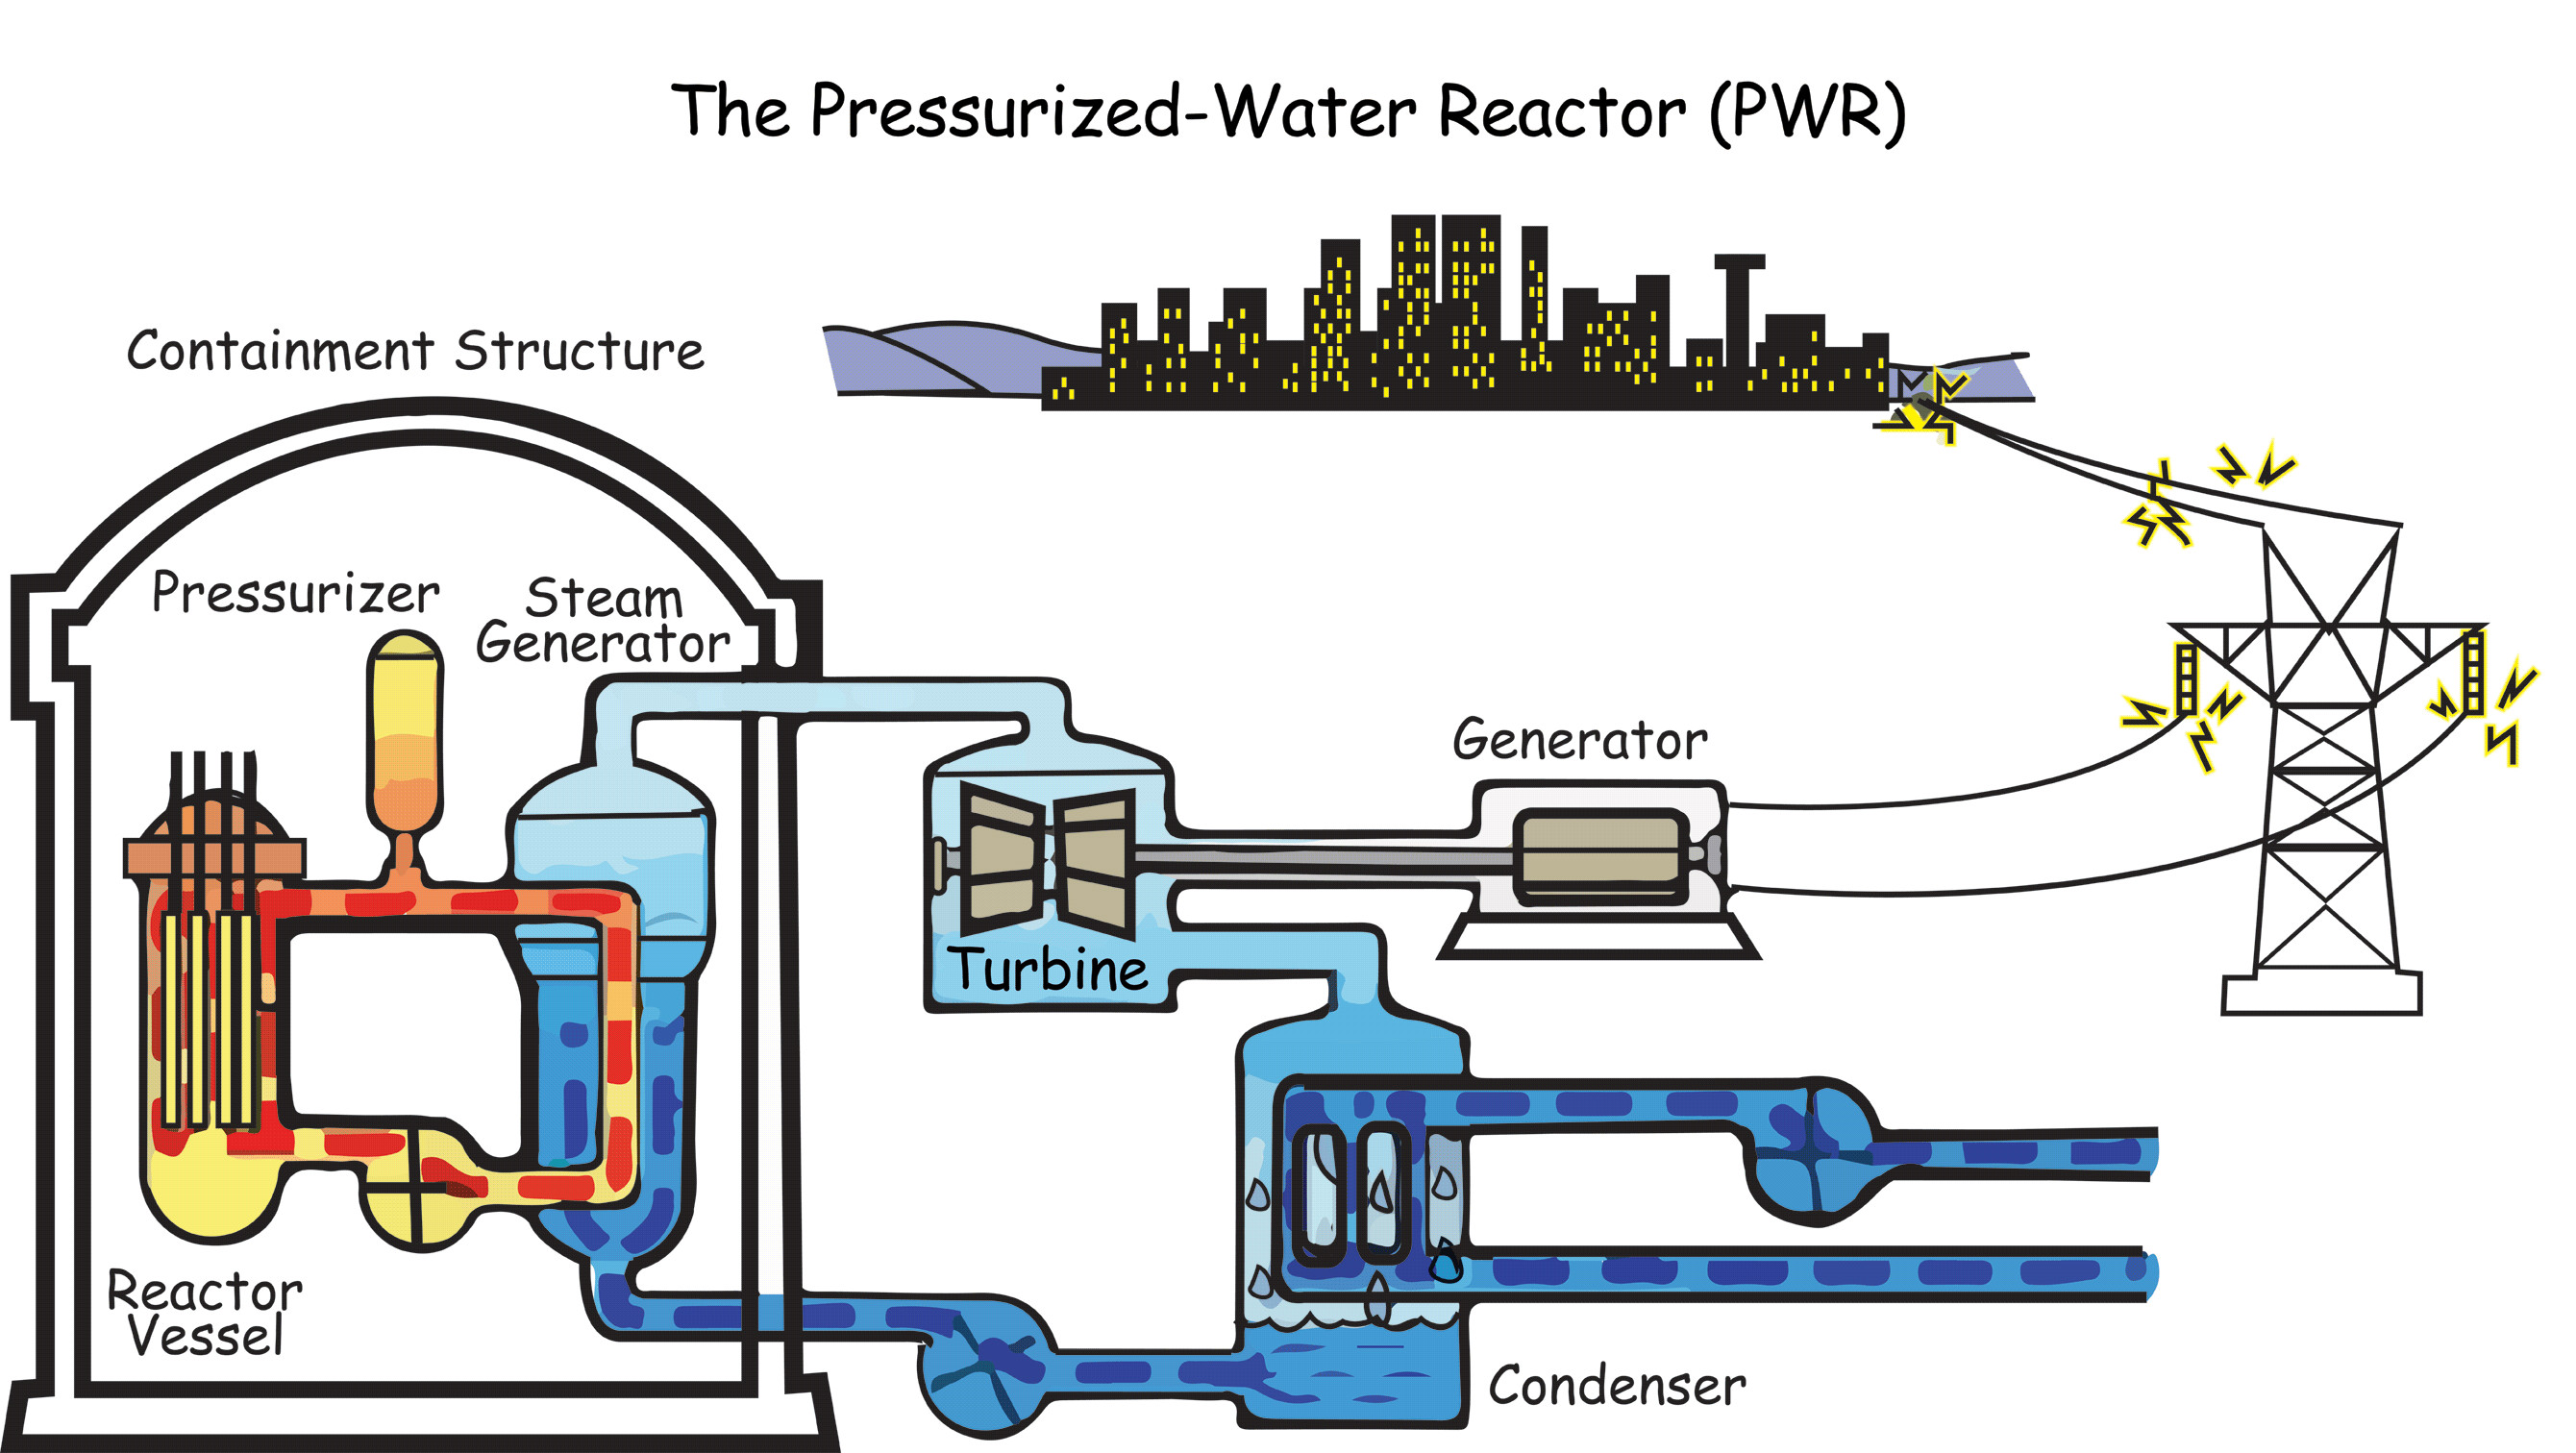 physics energy flow diagram saturn sc2 radio wiring operation of a nuclear power plant